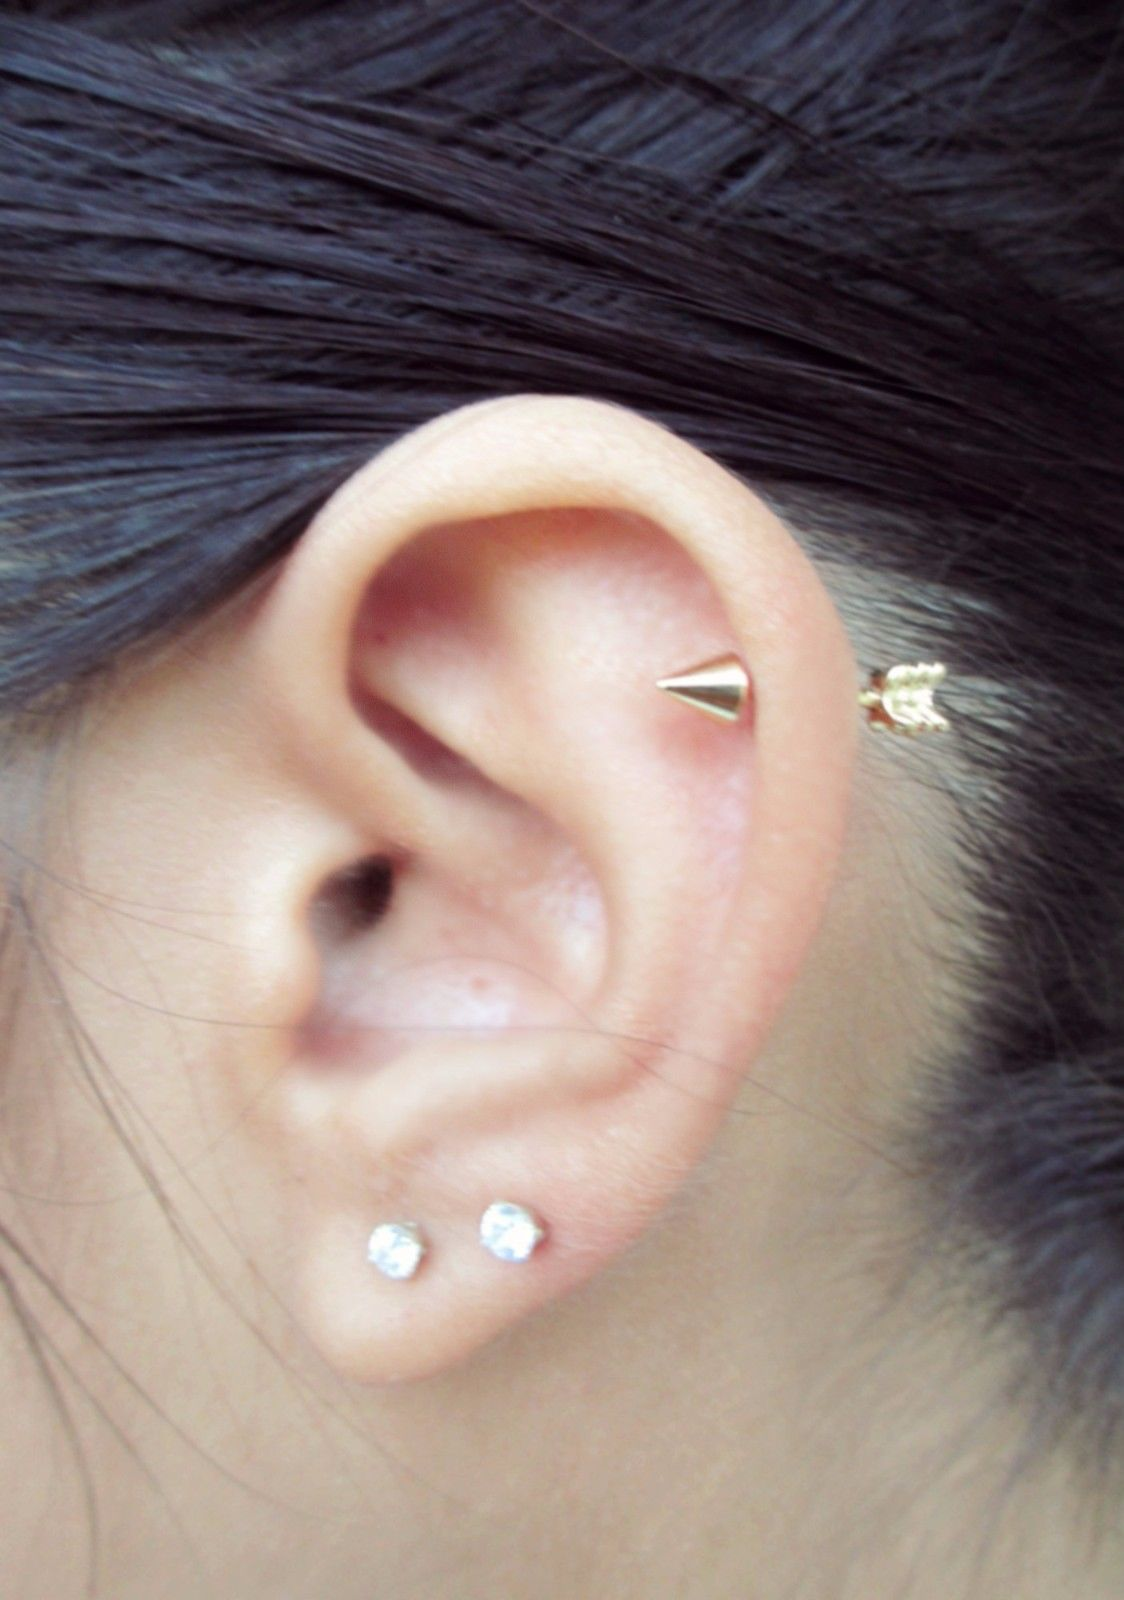 Nose piercing stud jewelry  Gold IP Arrow Cartilage Stud Body Piercing Earring G